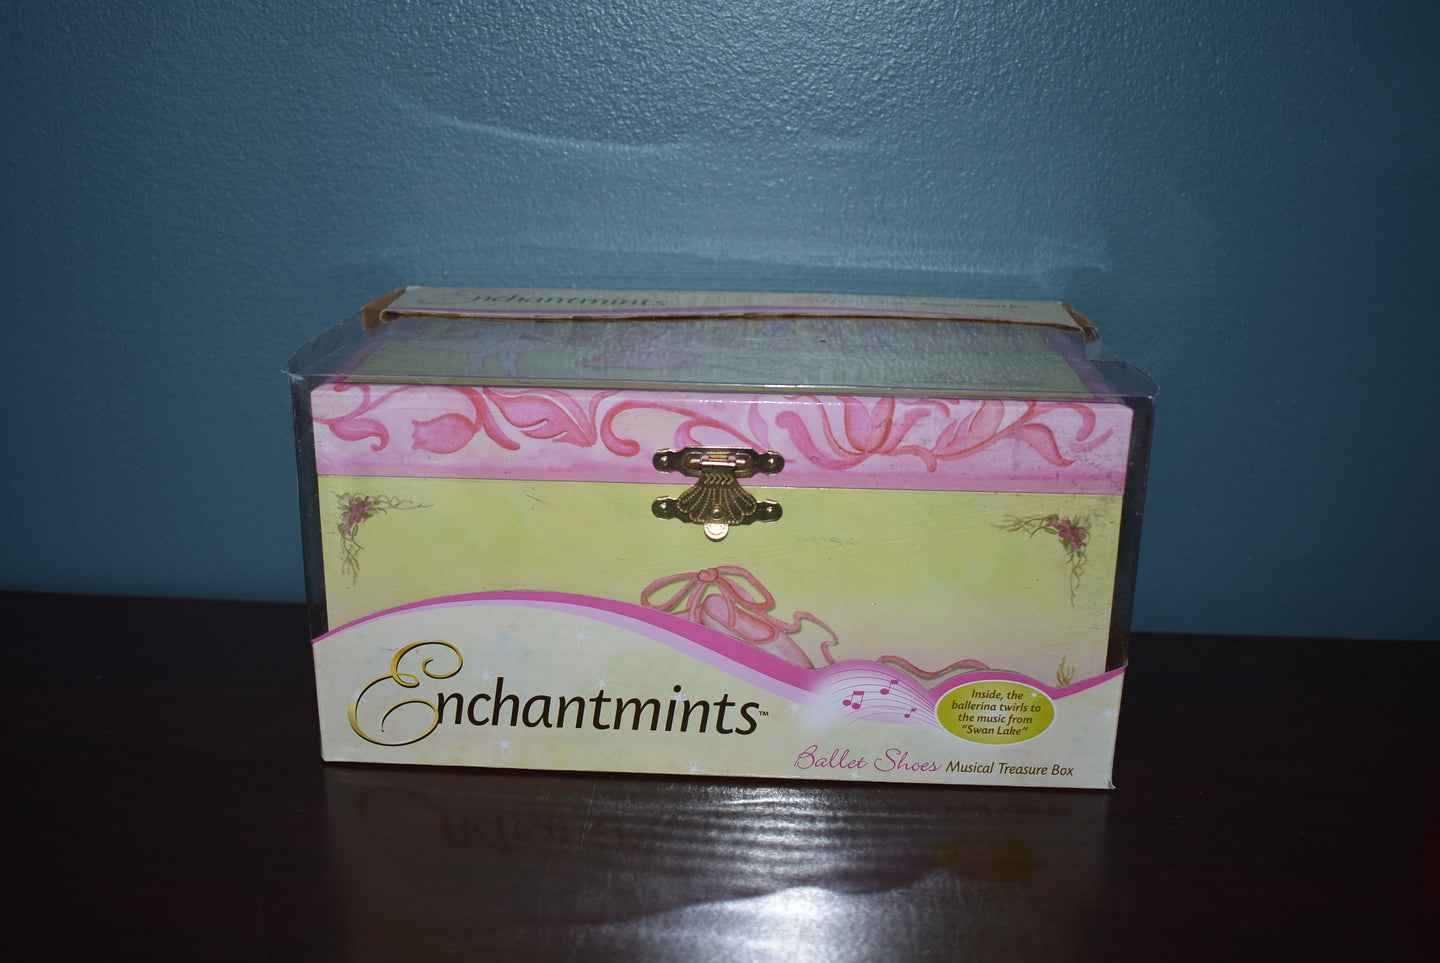 Enchantmints Ballet Shoes Musical Treasure Box-Breyer Accessory